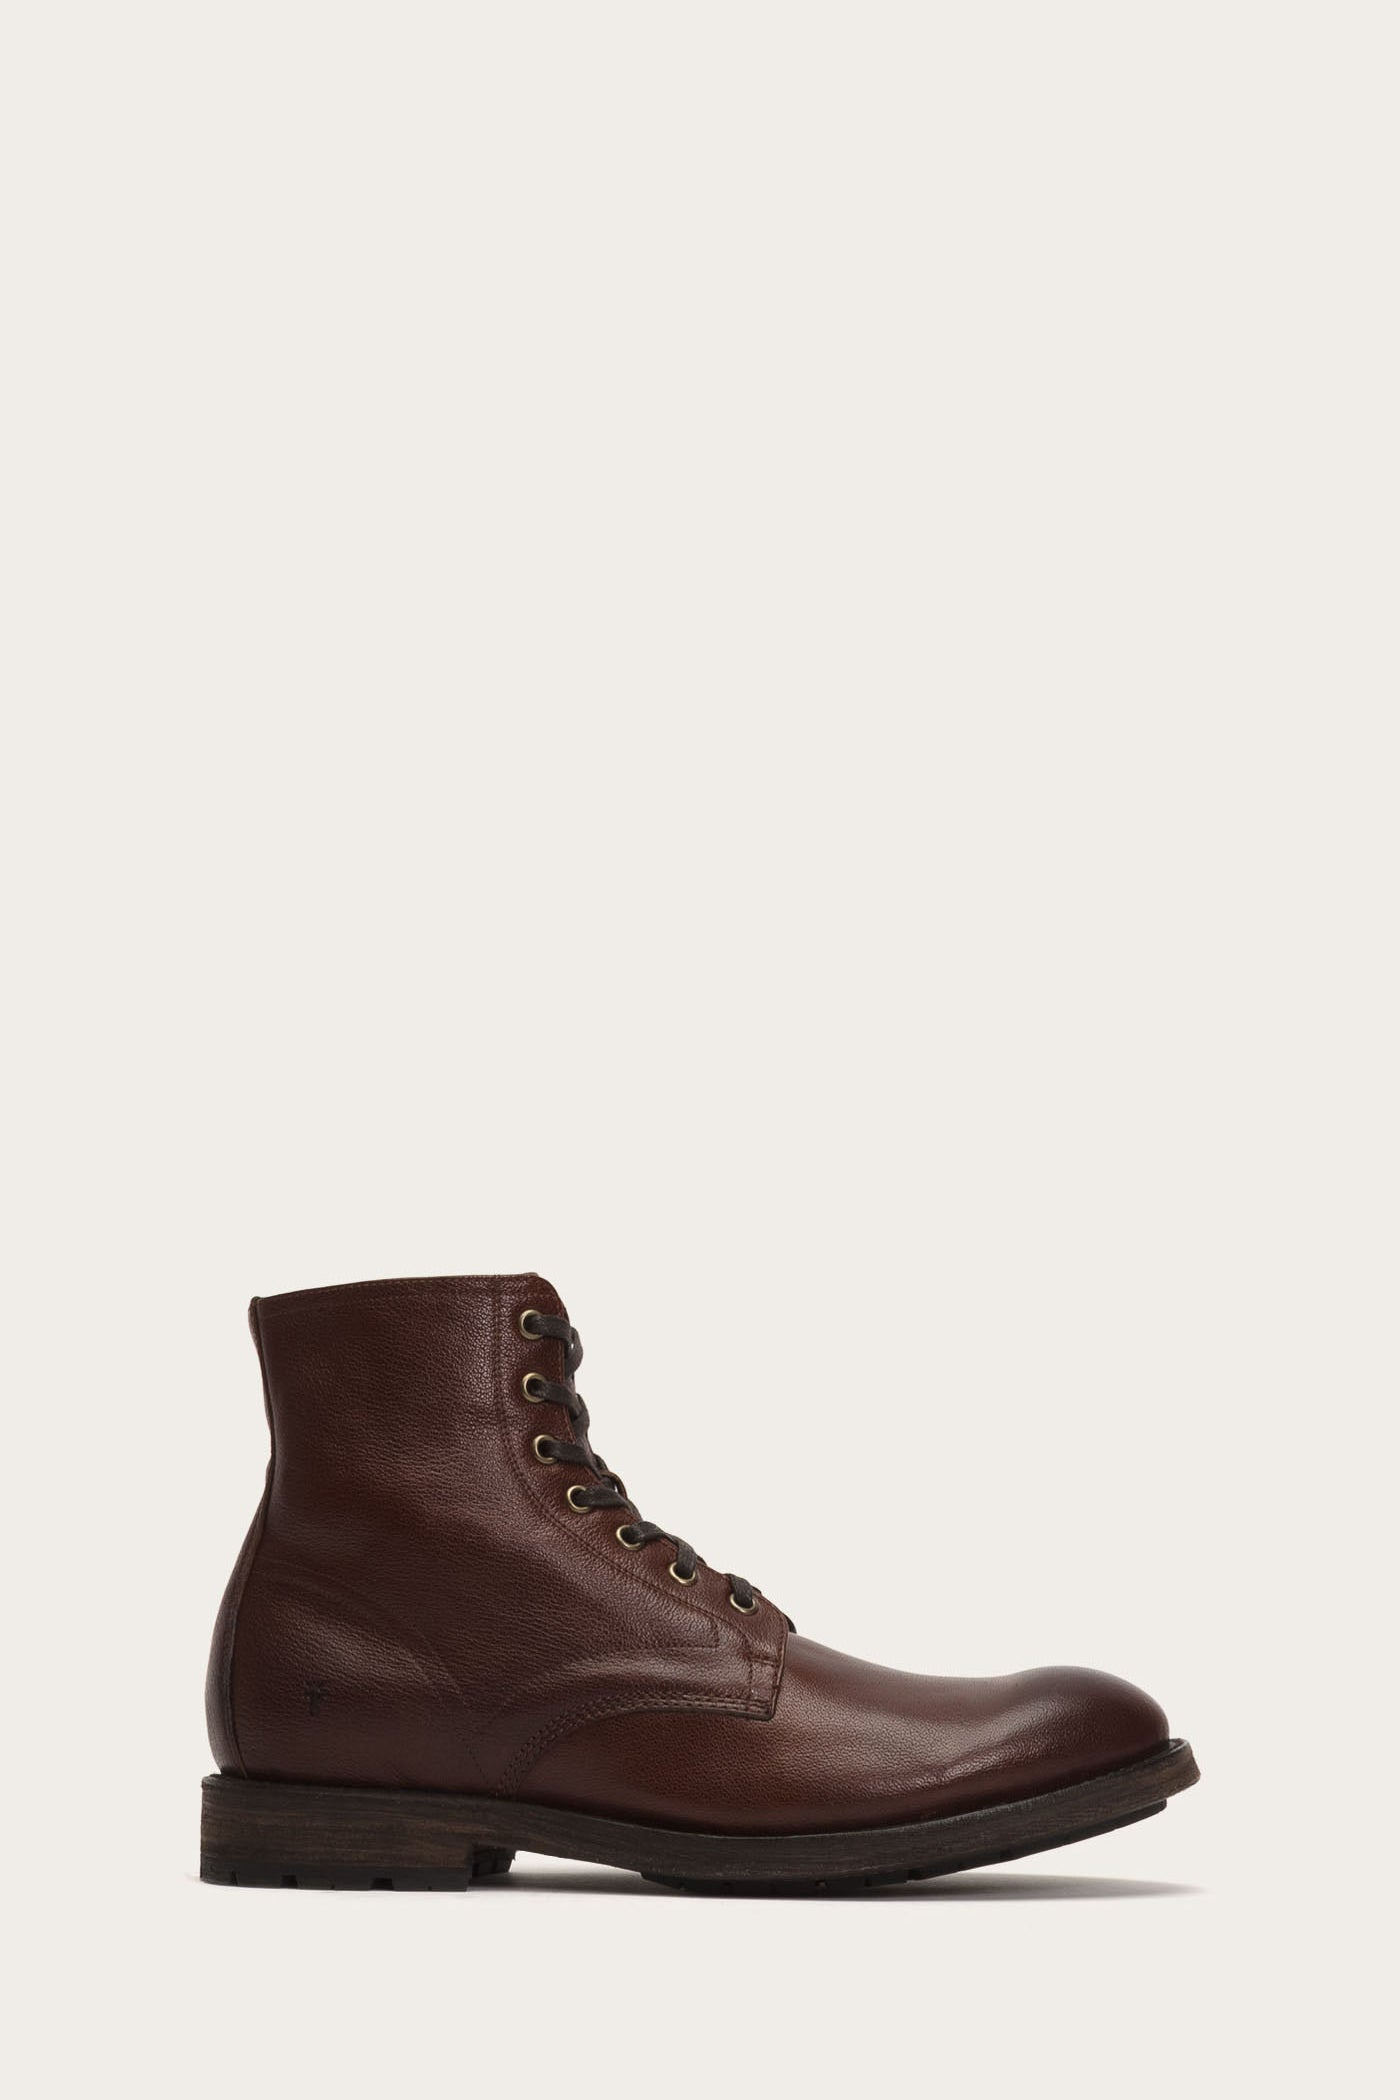 e8a16406463 Bowery Lace Up | FRYE Since 1863